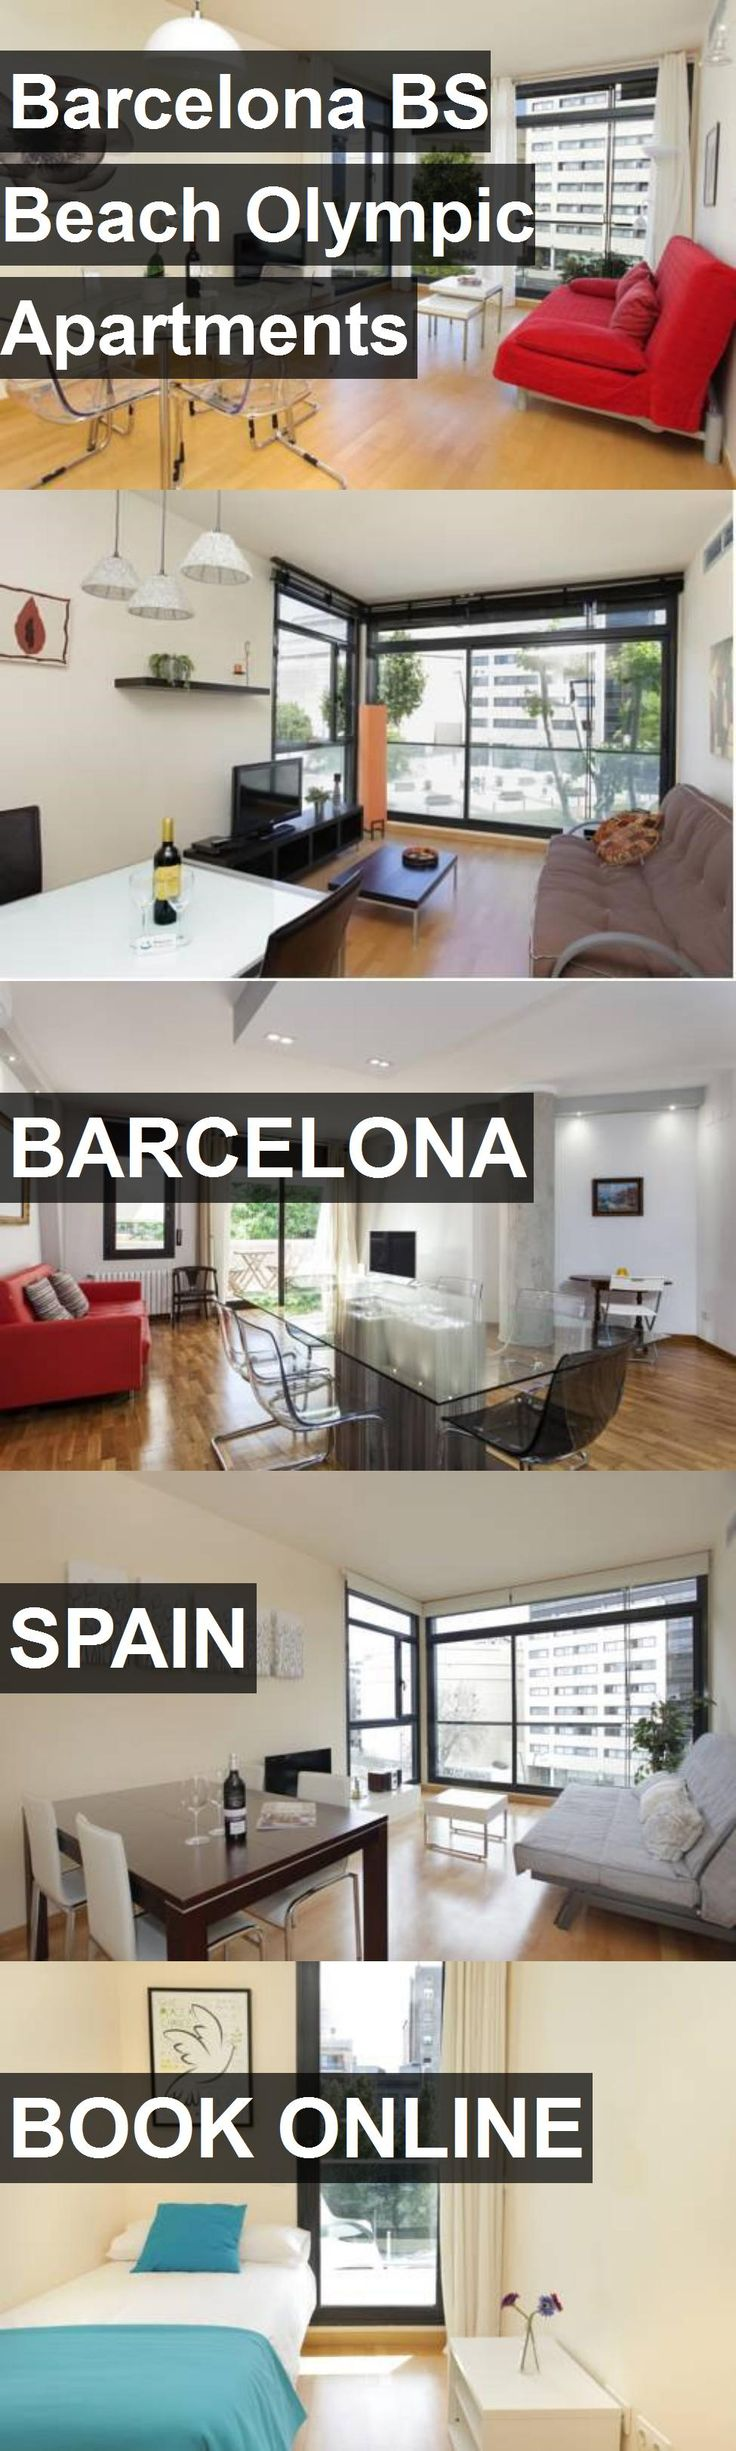 Barcelona BS Beach Olympic Apartments in Barcelona, Spain. For more information, photos, reviews and best prices please follow the link. #Spain #Barcelona #travel #vacation #apartment